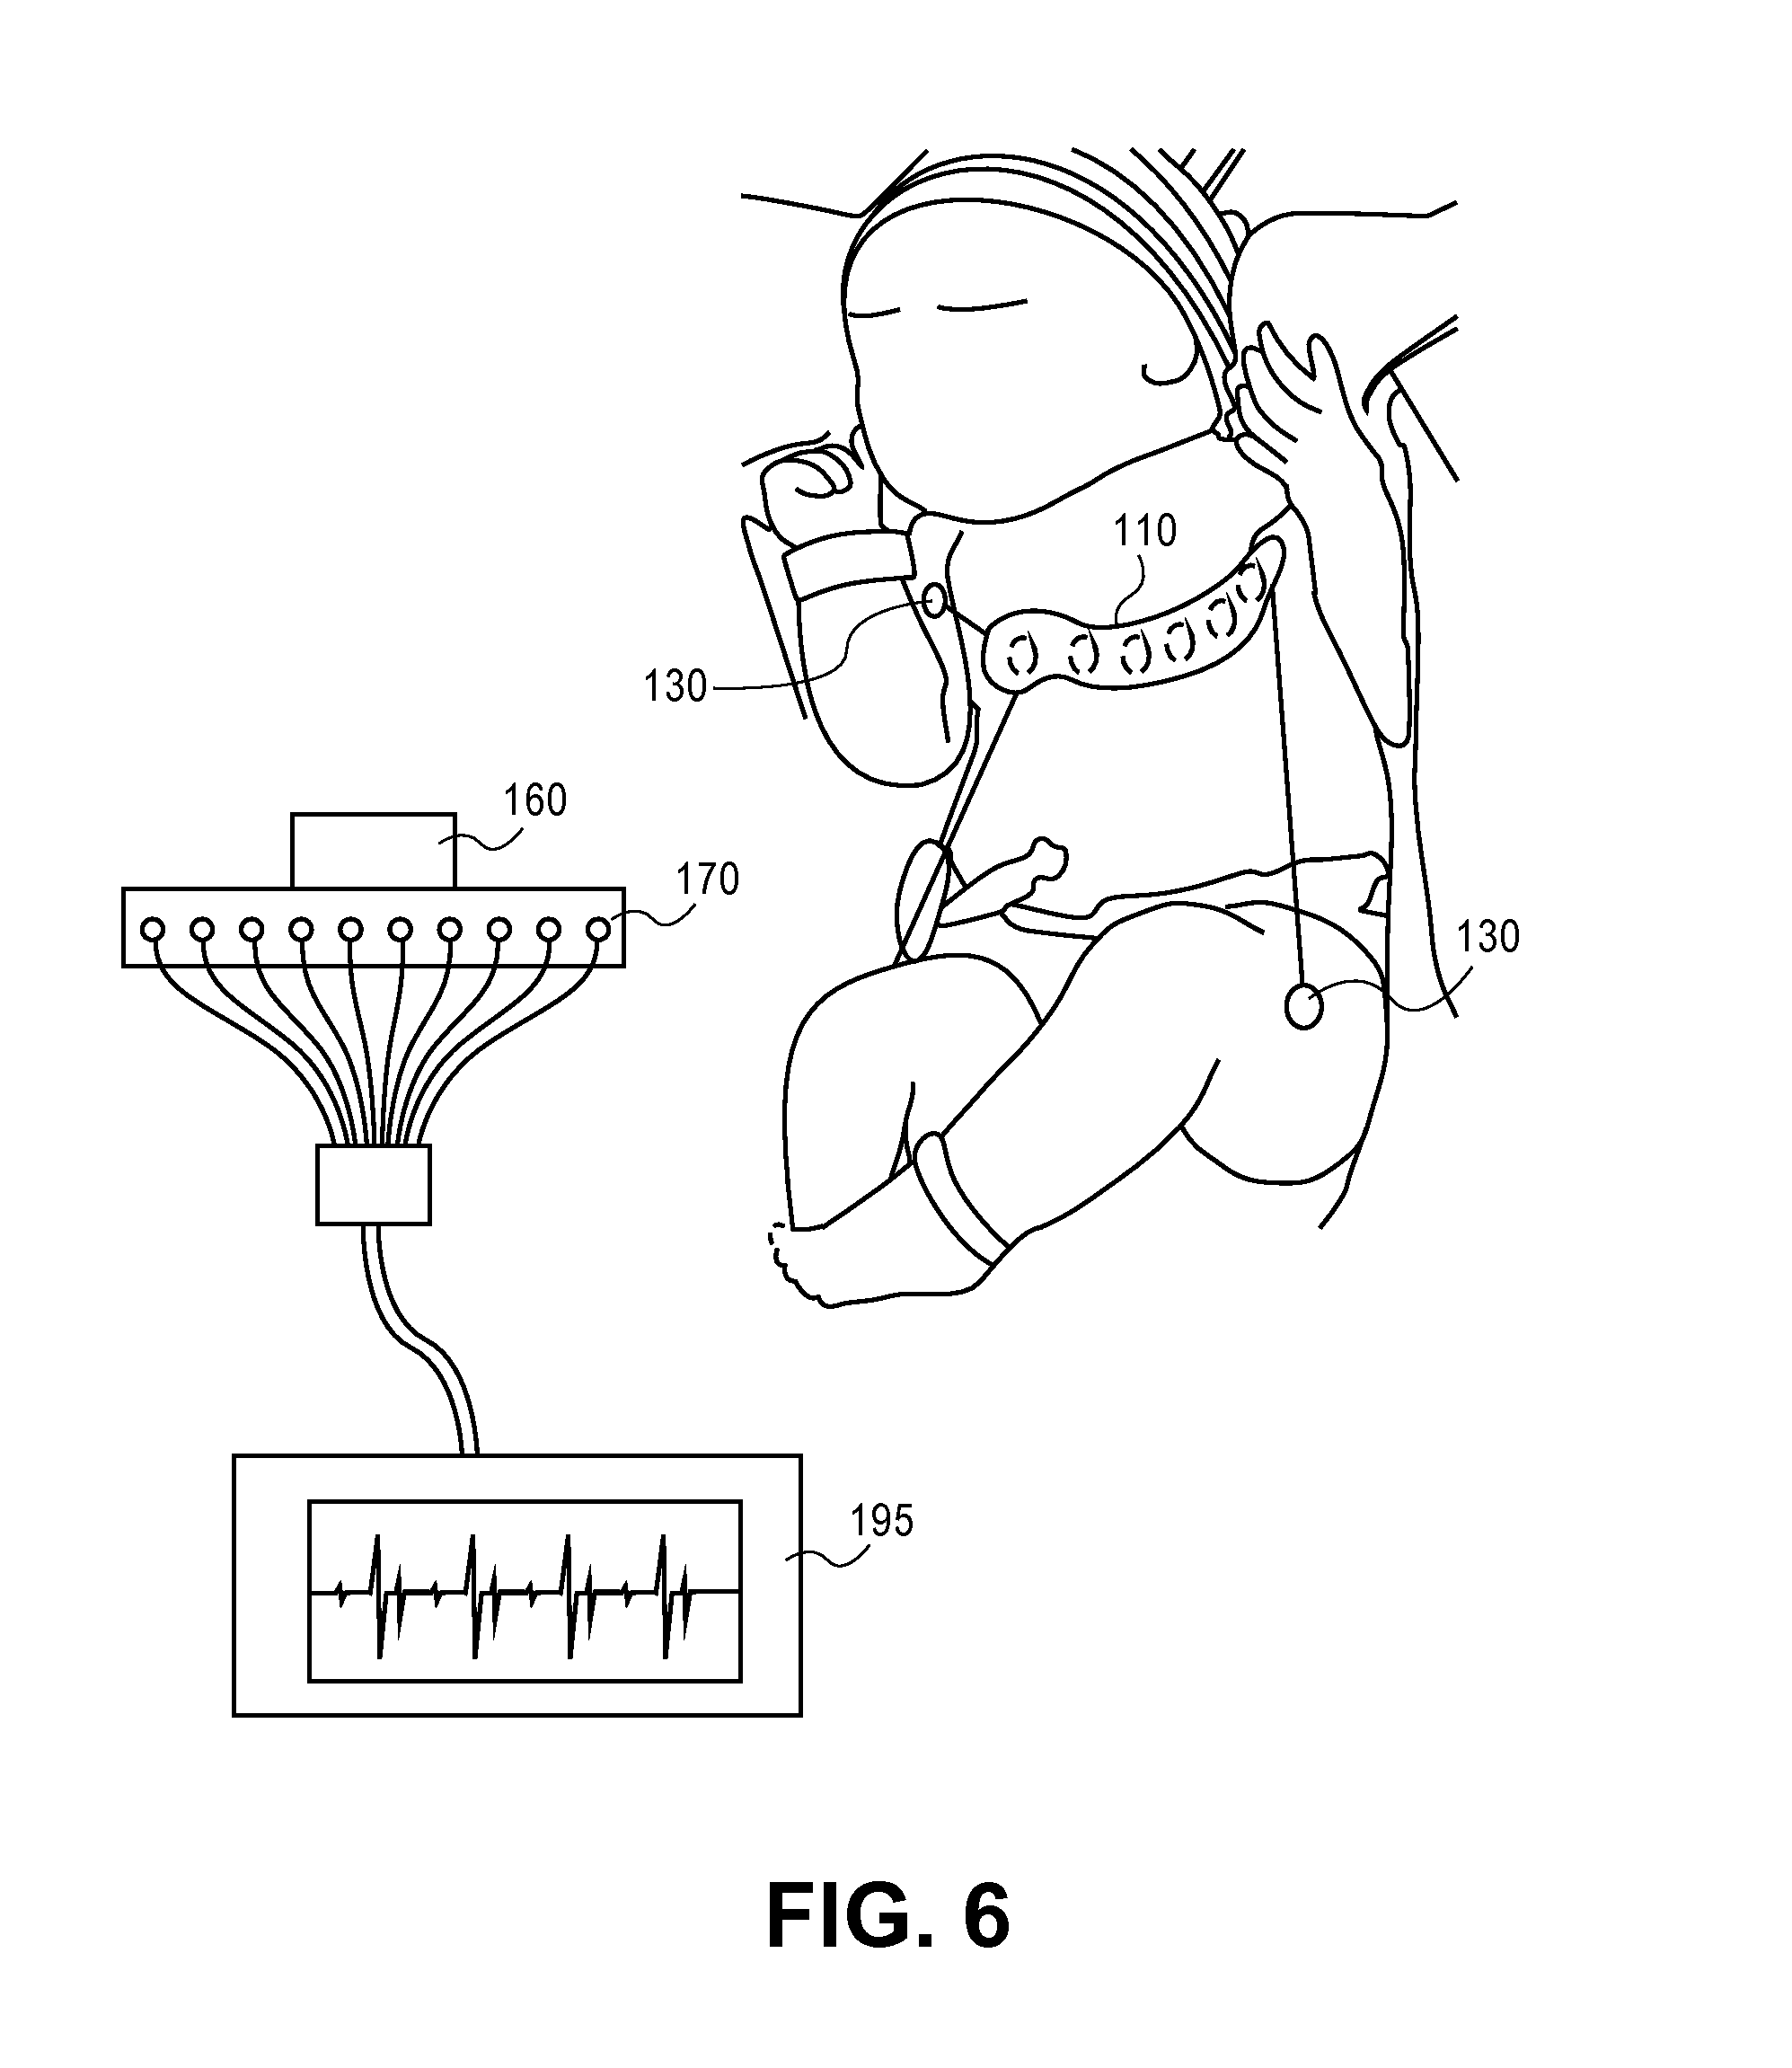 pediatric ekg lead placement diagram wiring for household light switch patent us8369924 - ecg leads system newborn screening google patents